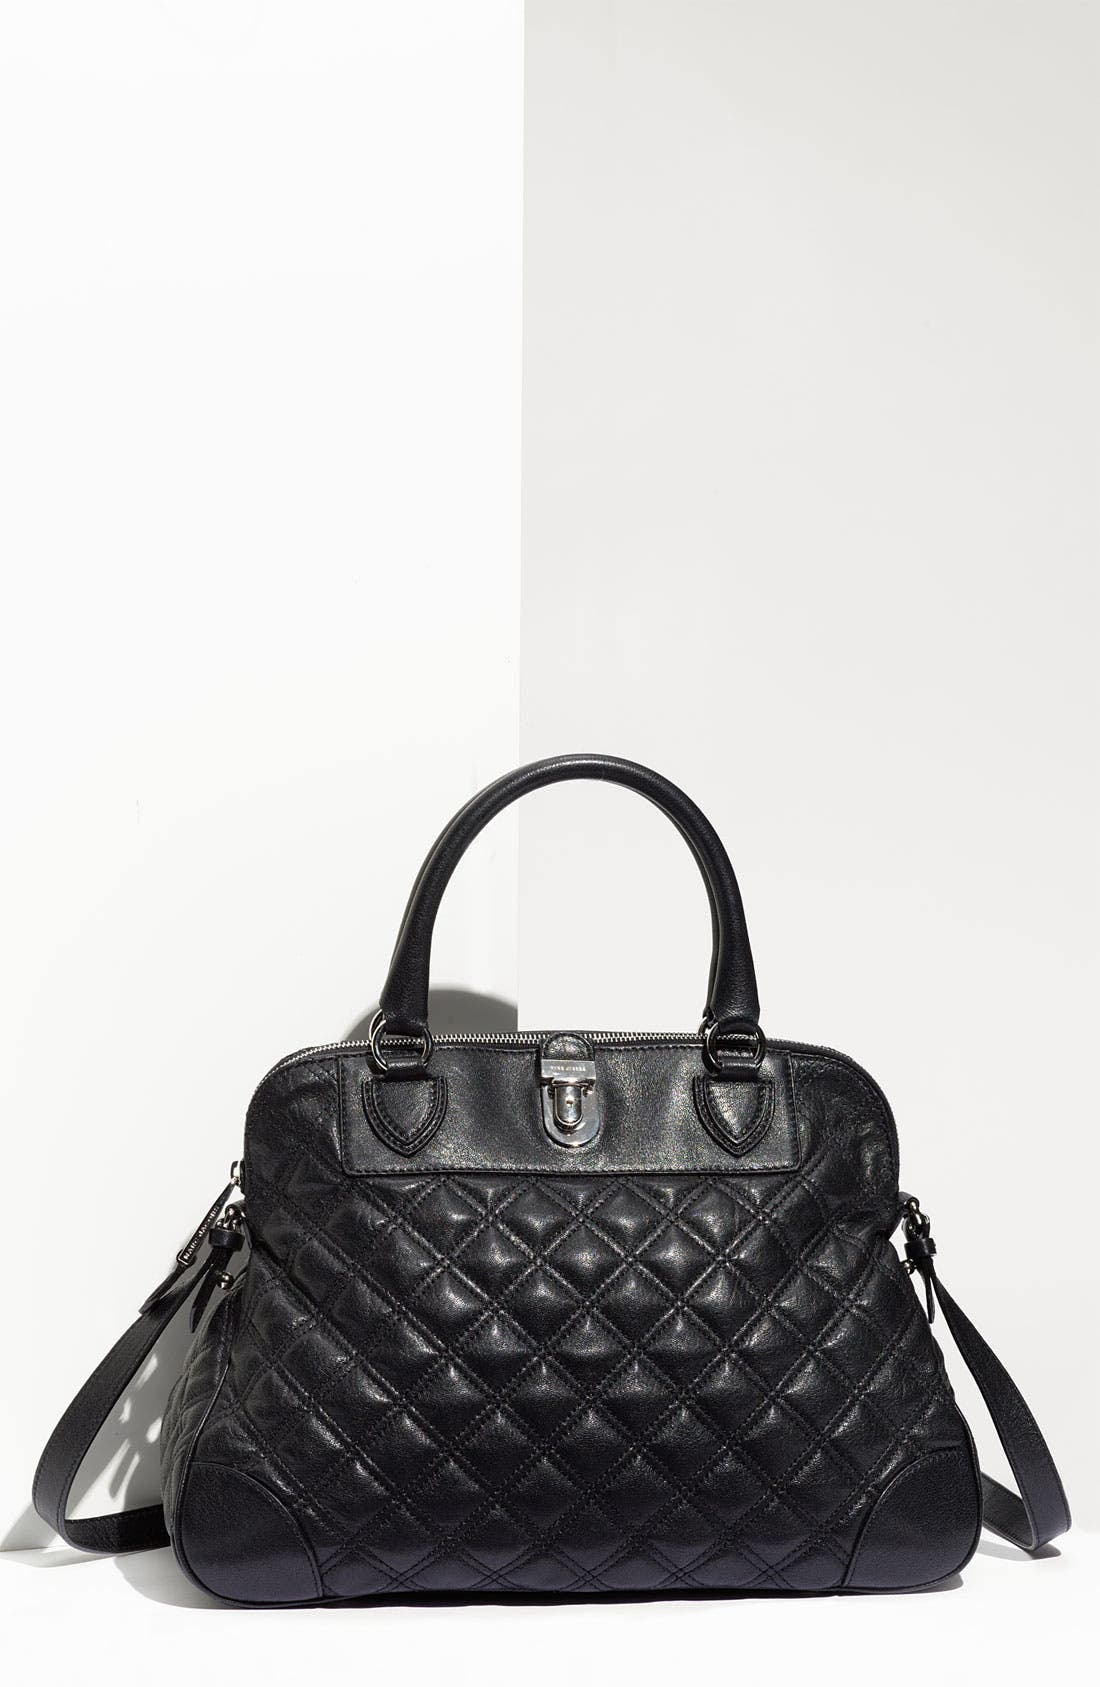 Alternate Image 1 Selected - MARC JACOBS 'Quilting Whitney' Lambskin Leather Satchel